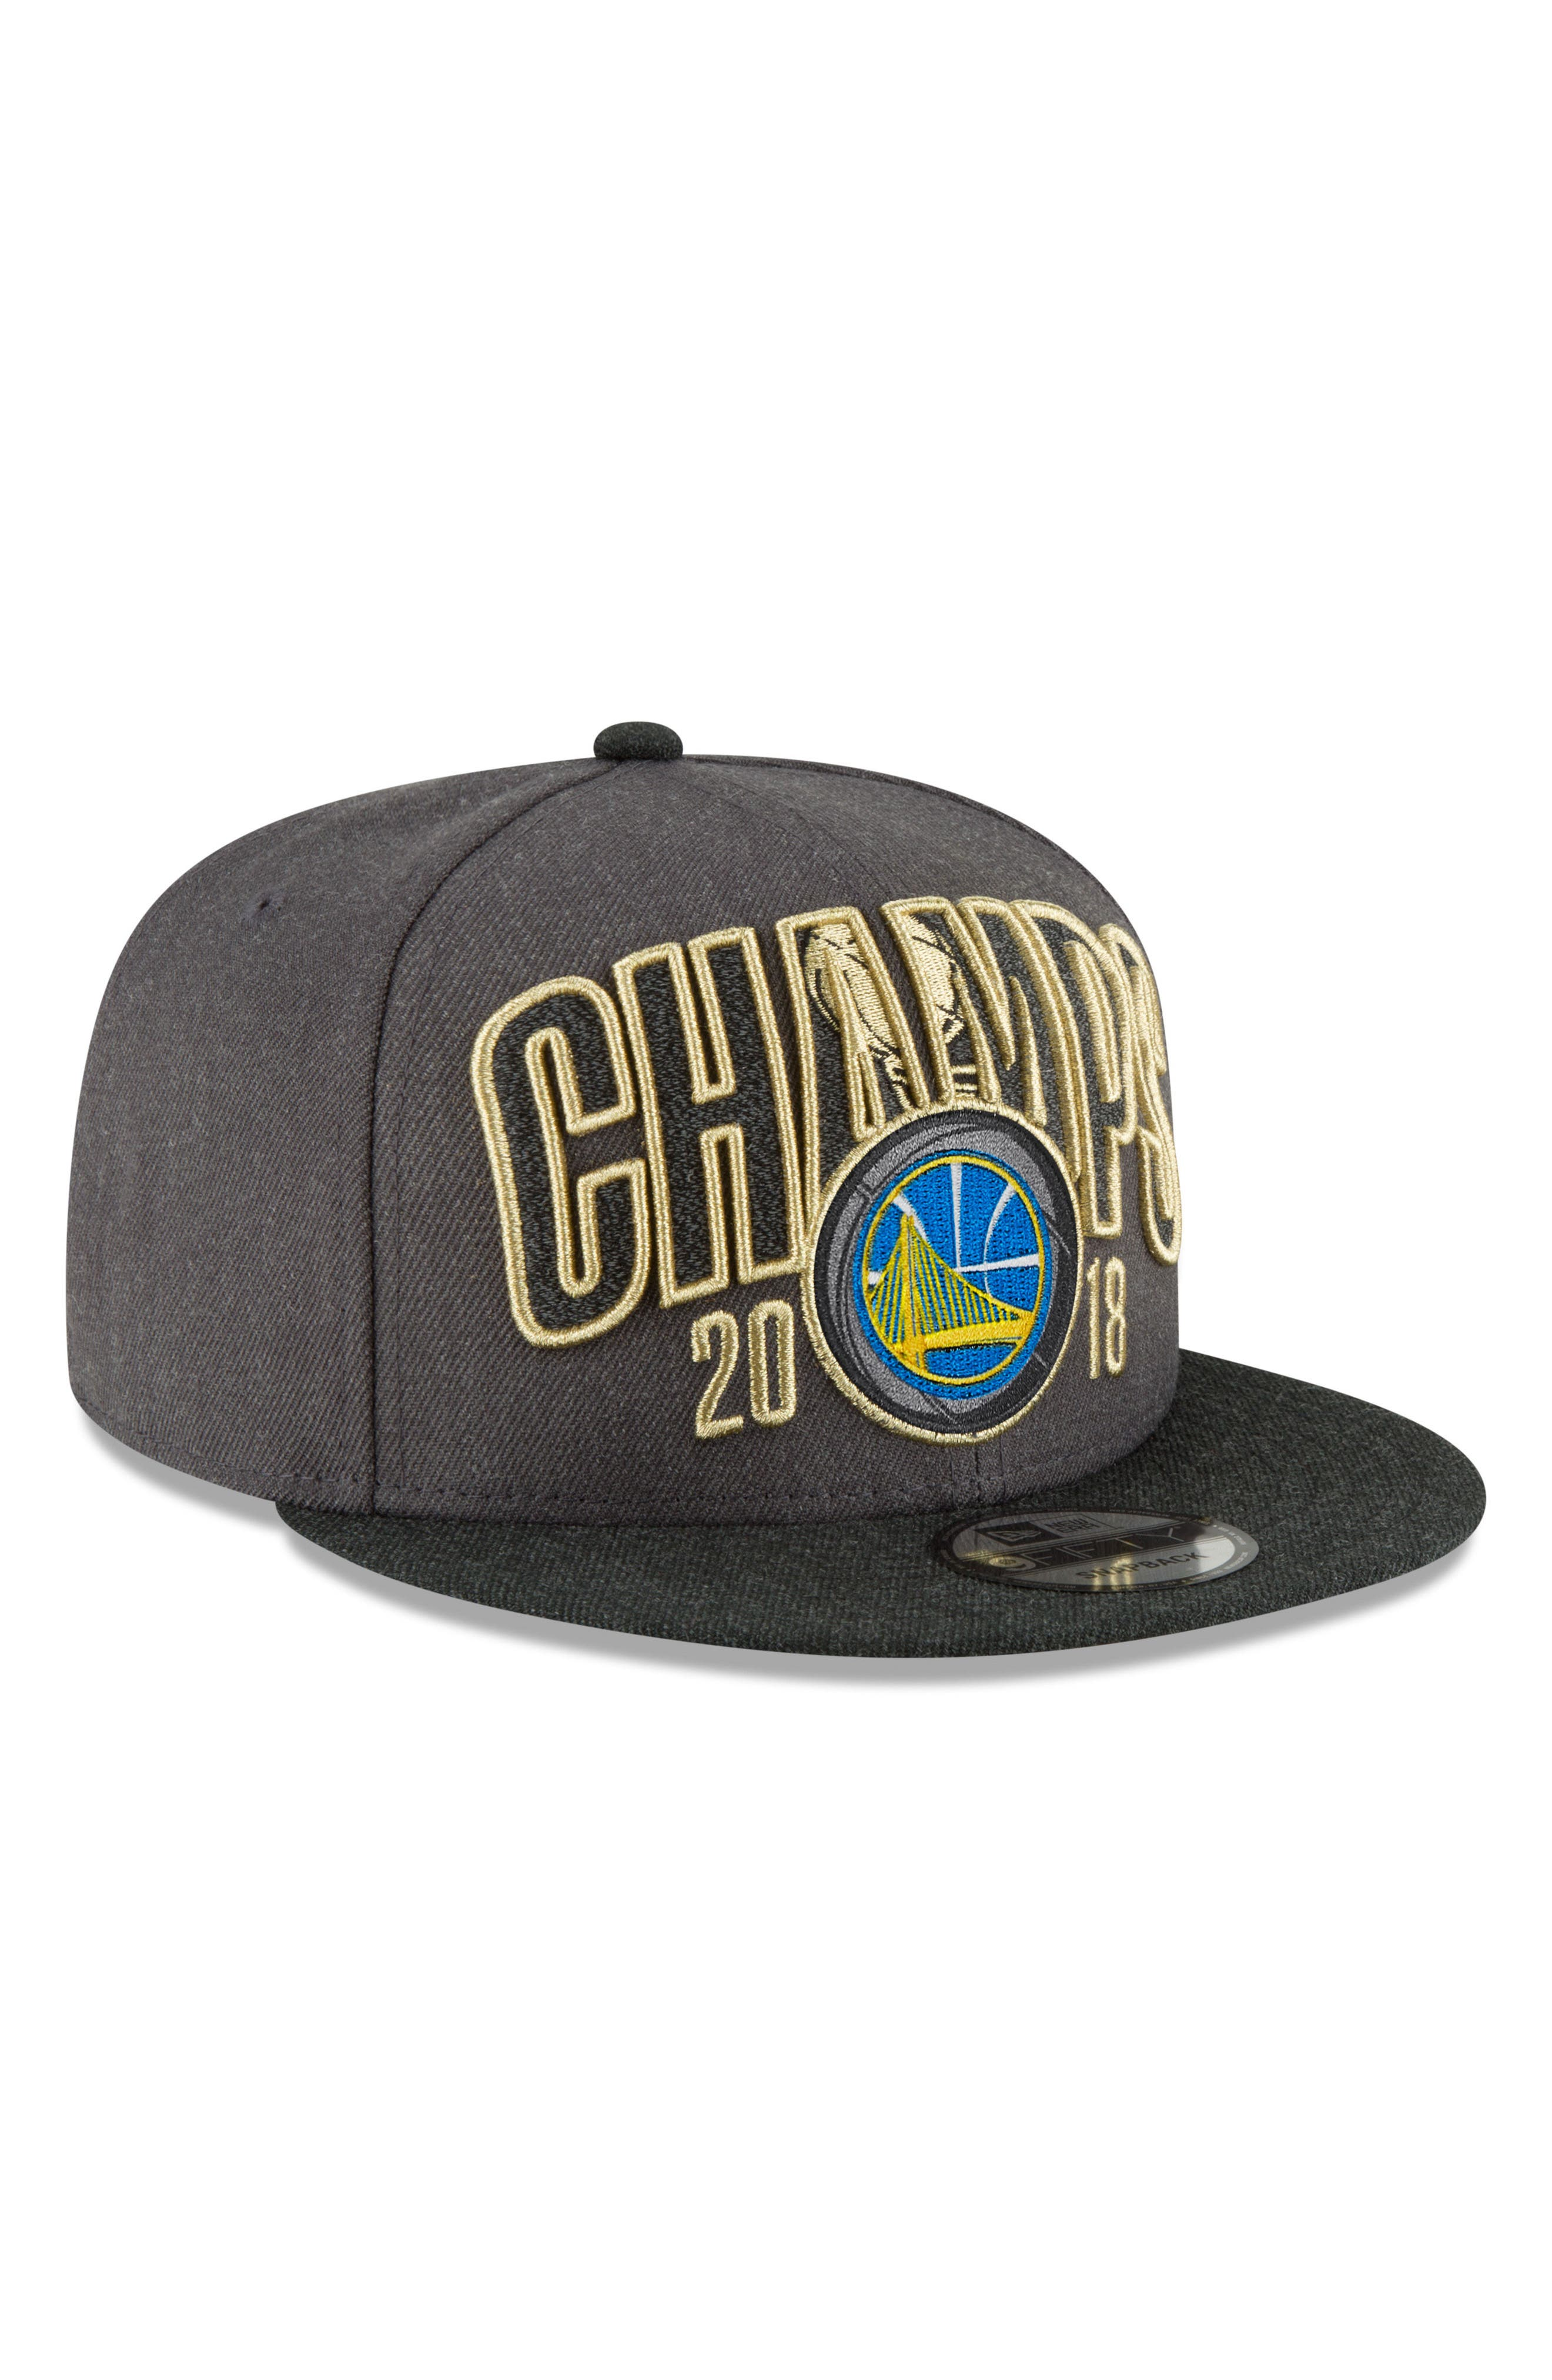 2018 NBA Champions - Golden State Warriors 9Fifty Snapback Cap,                             Main thumbnail 1, color,                             Golden State Warriors